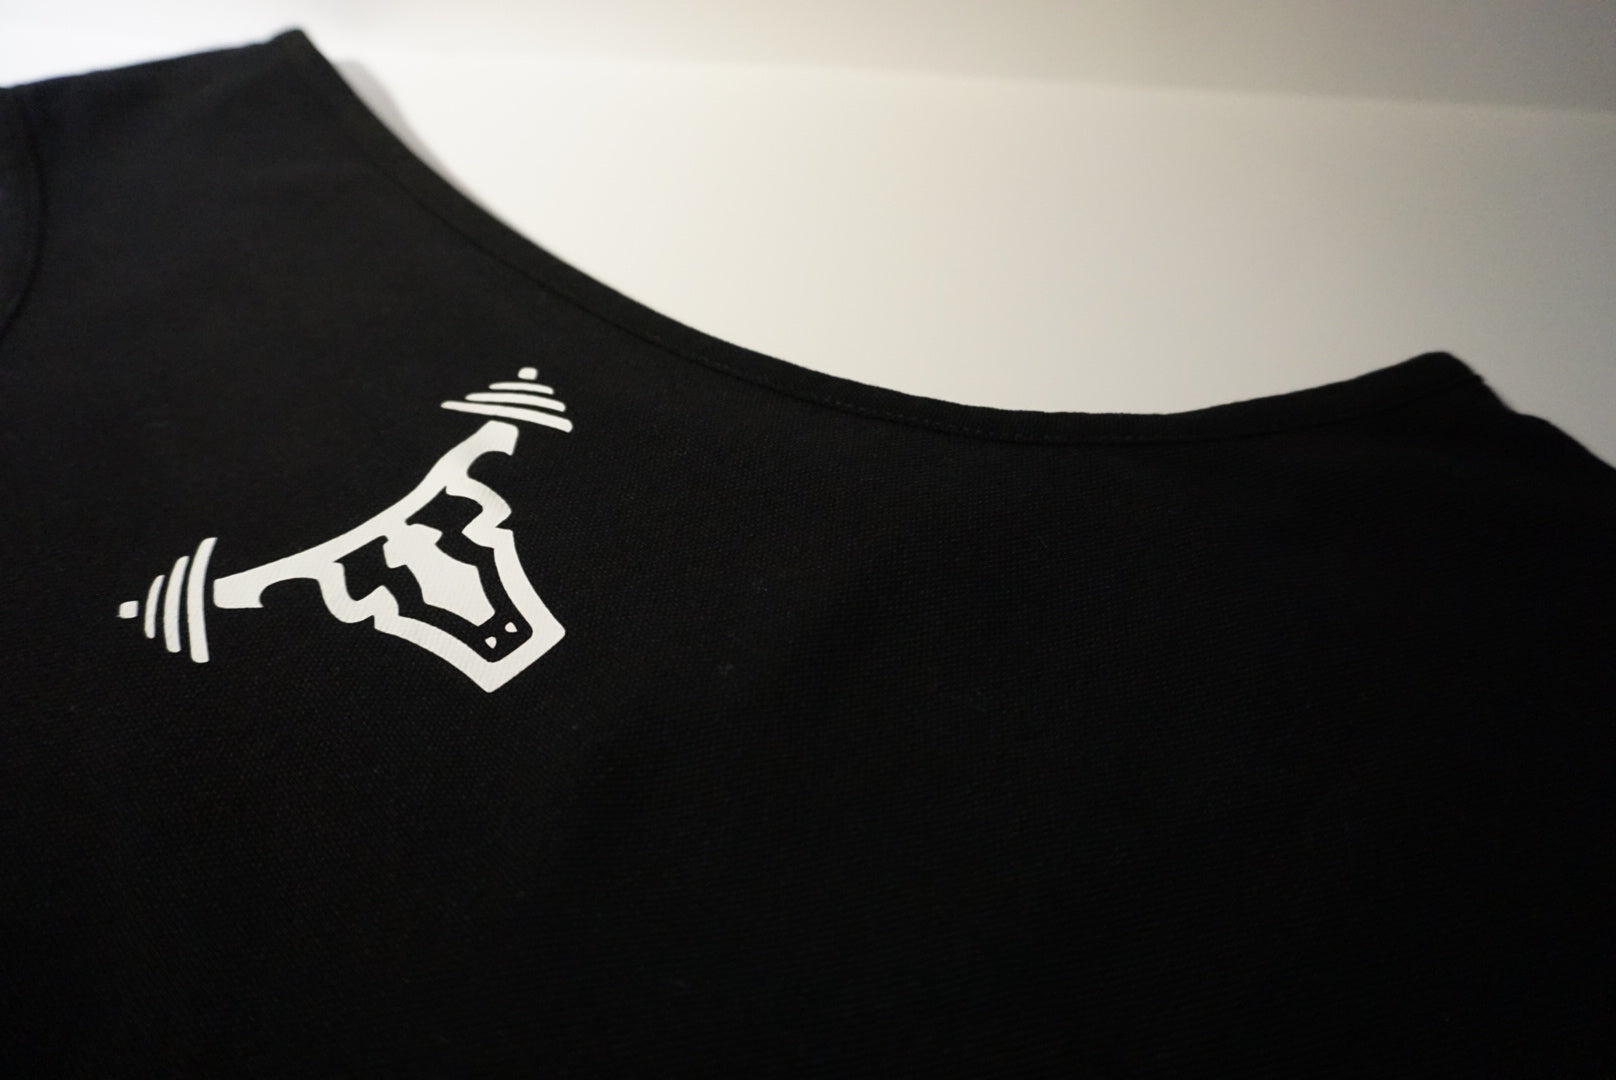 Iconic Men's Tank Top